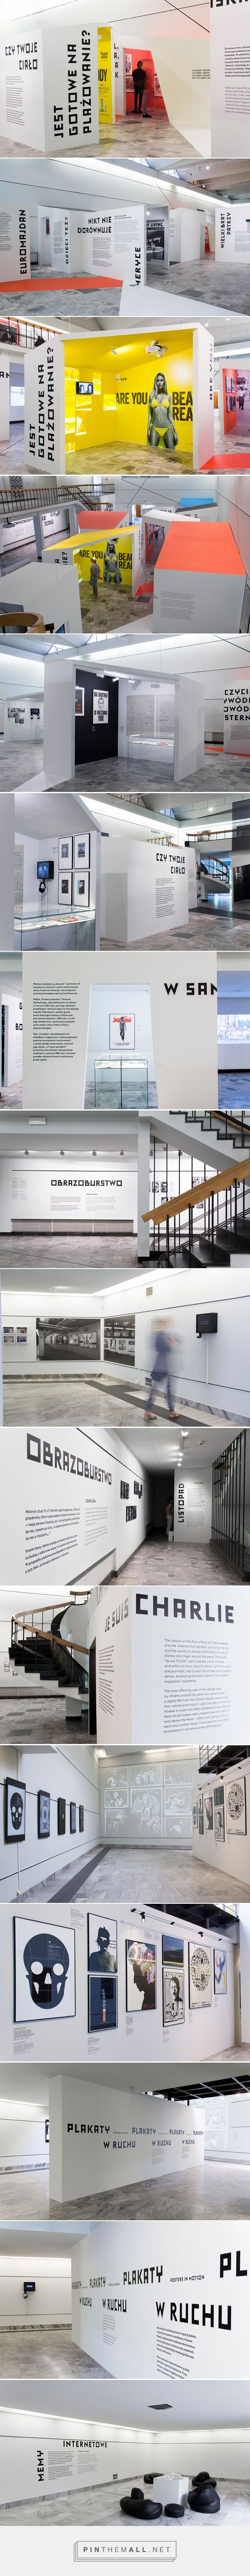 International Poster Biennale, Warsaw – the exhibition on Behance - created via https://pinthemall.net